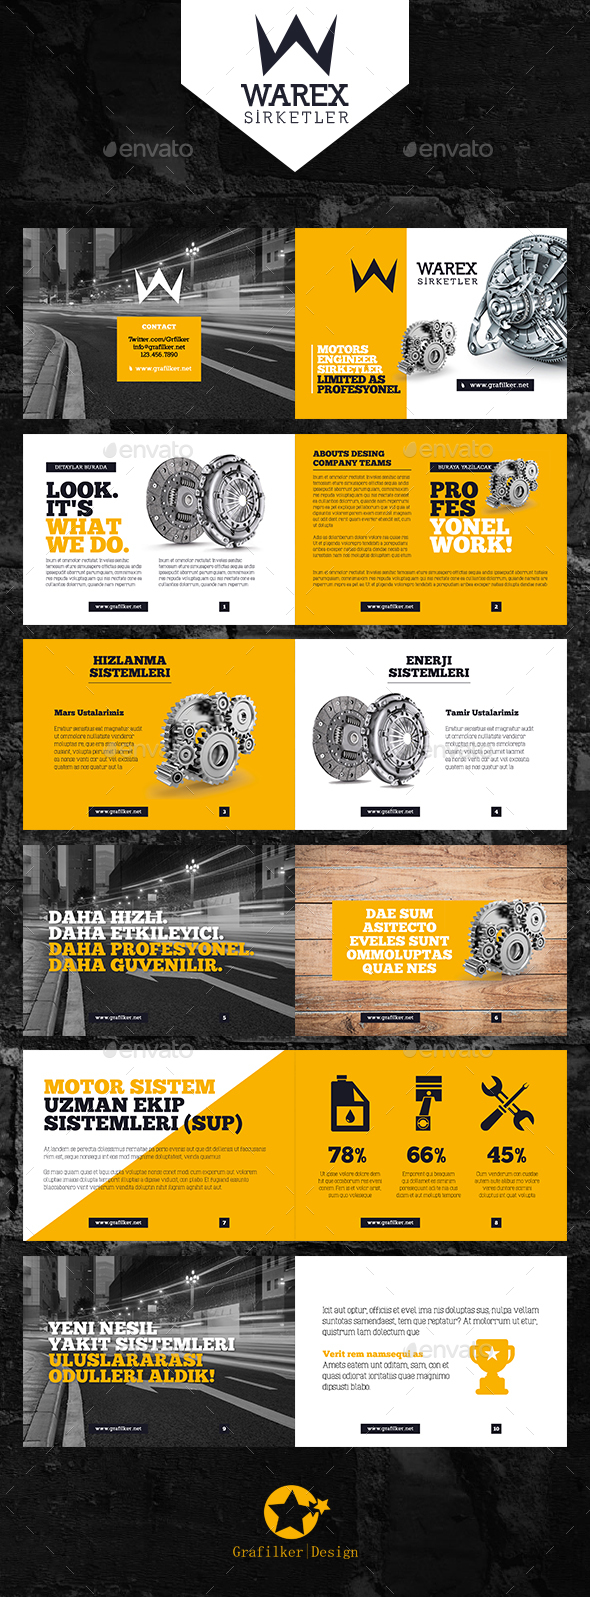 Product Information Brochure Templates - Corporate Brochures